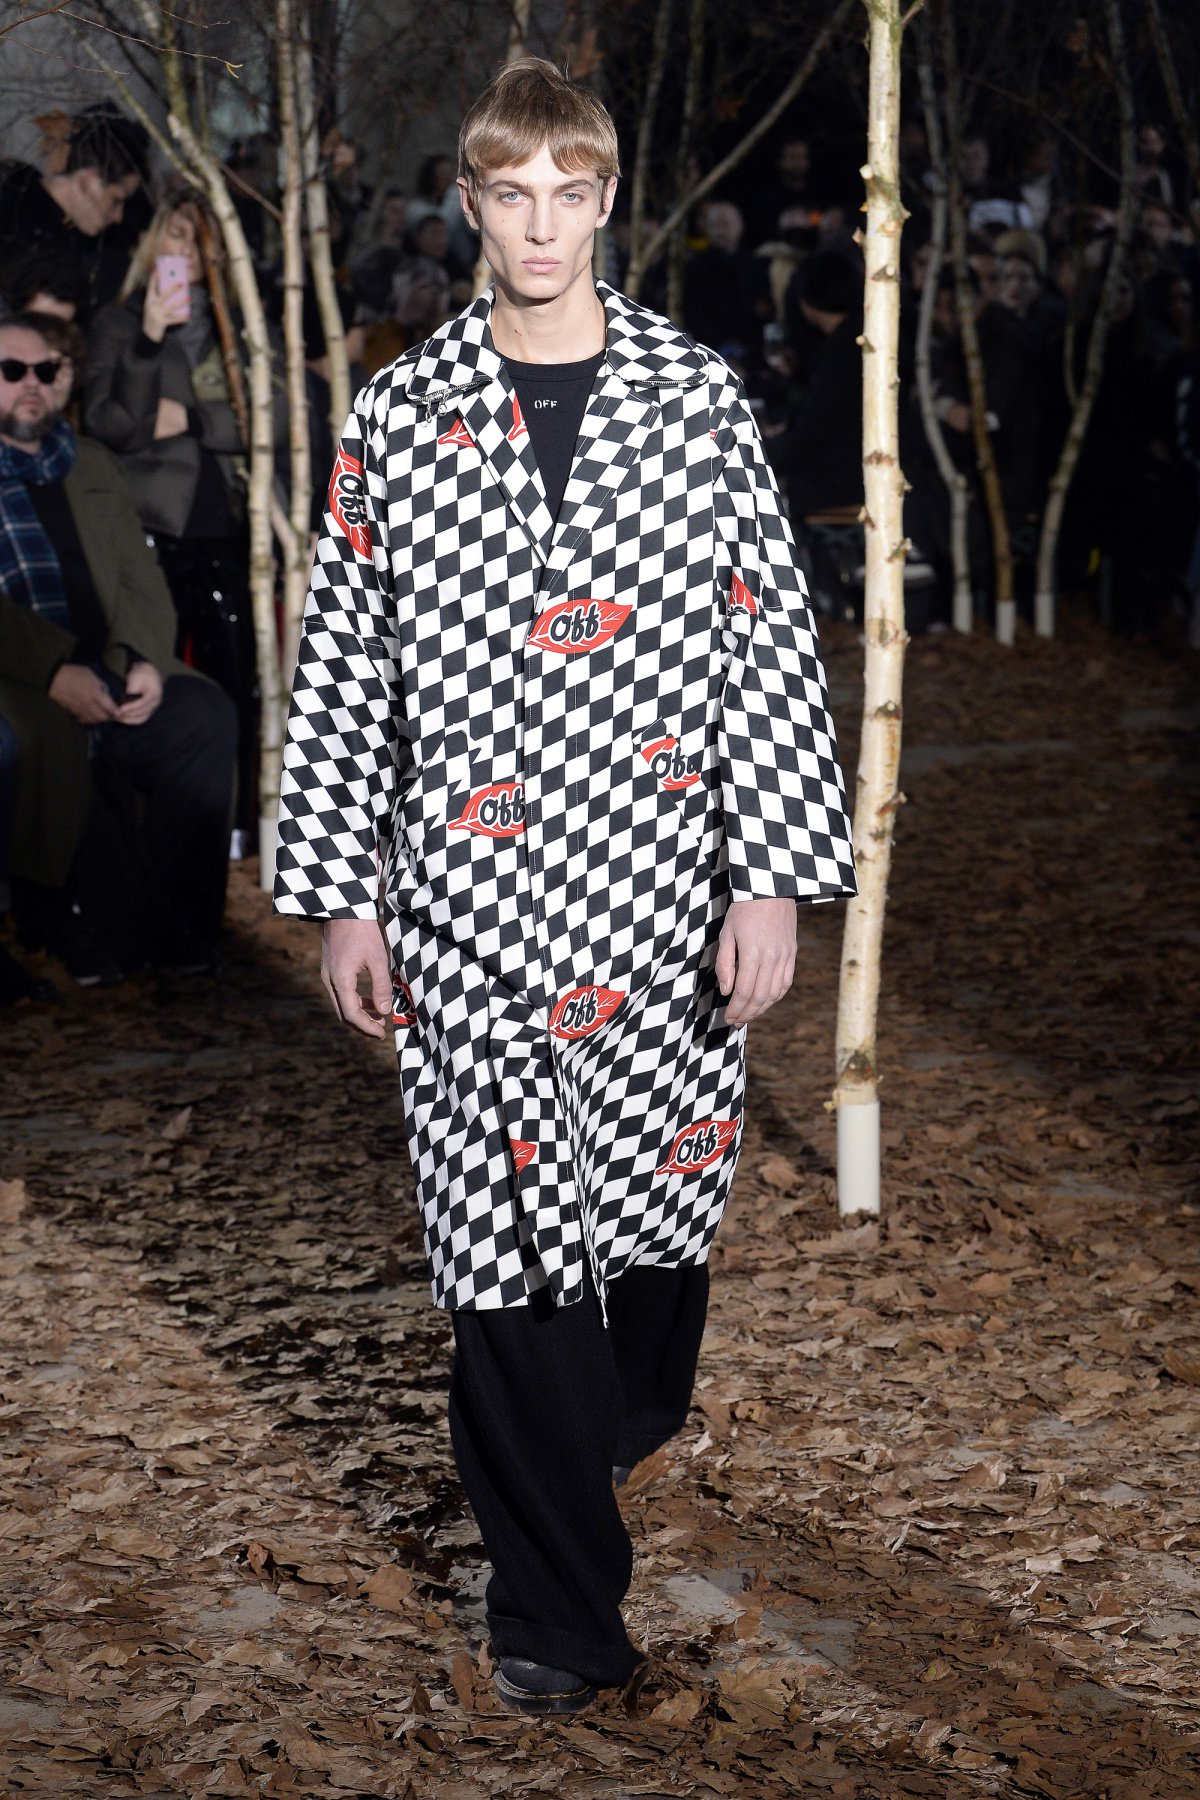 off_white_look_19_2017_aw_mens.jpeg